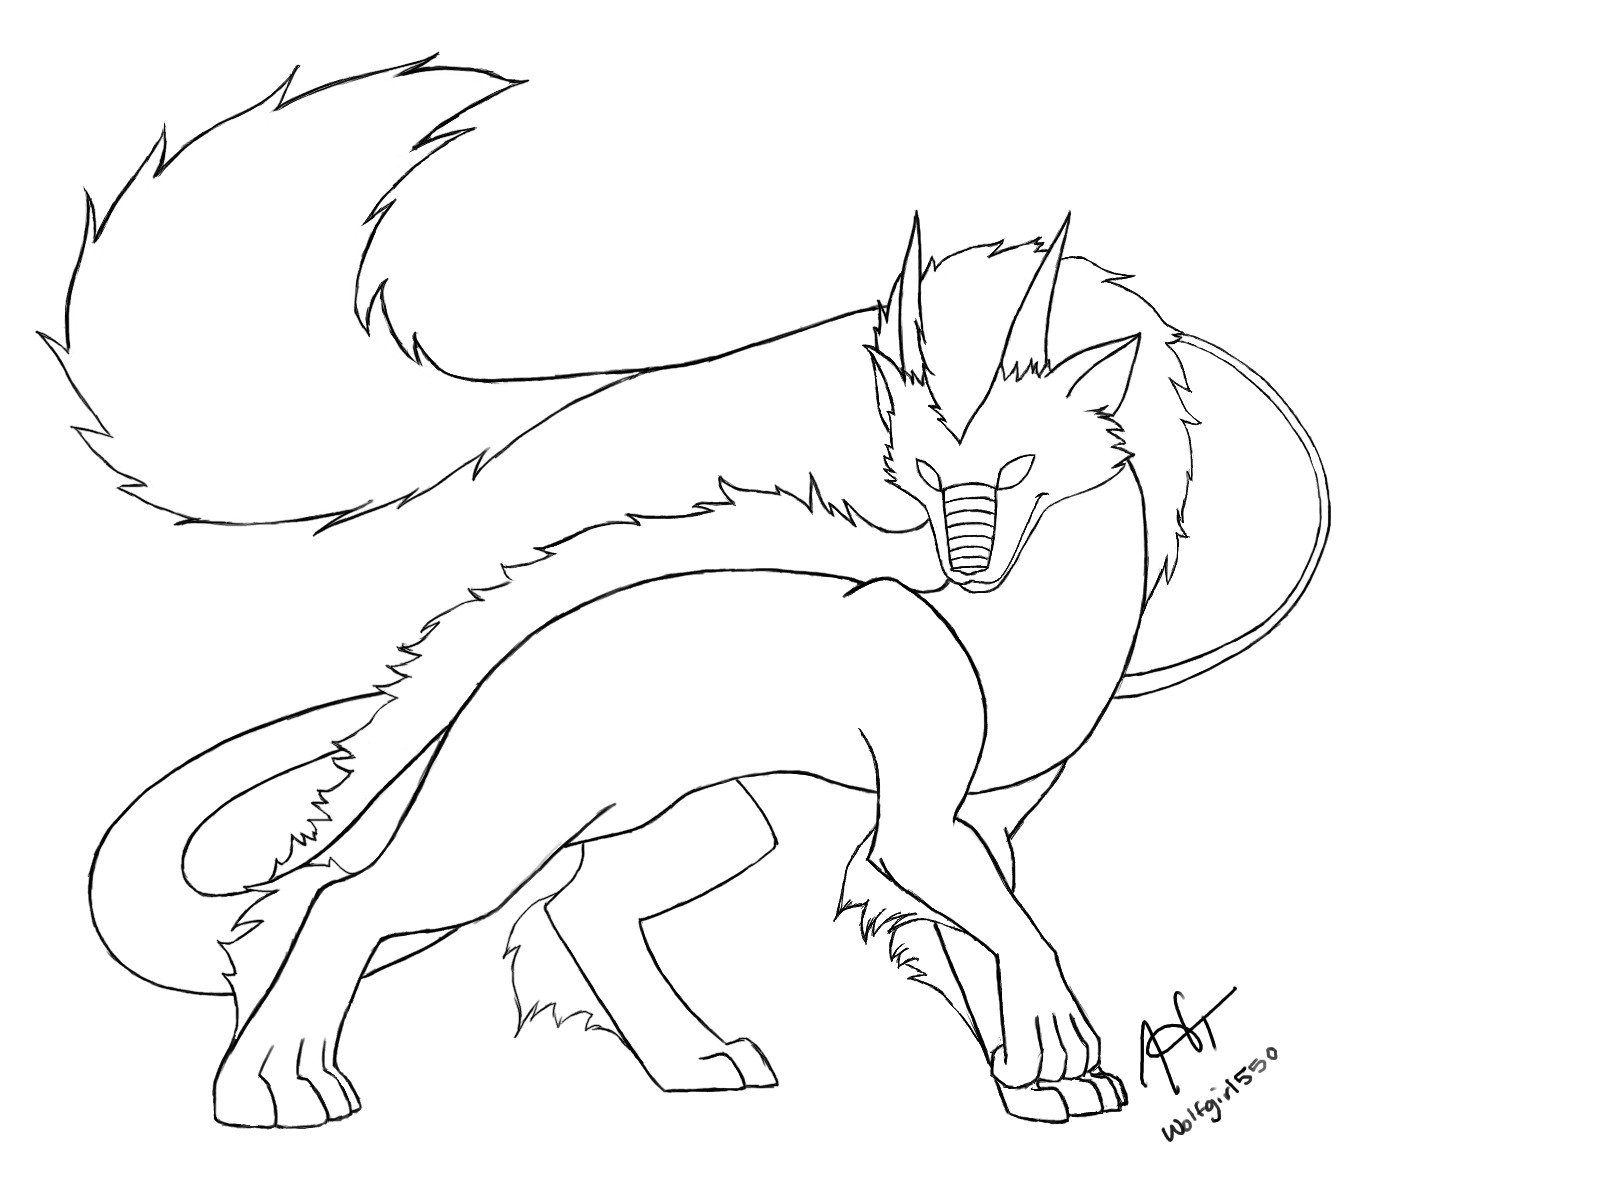 Dragon Line Drawing Easy : Wolf dragon line art thingy by wolfgirl on deviantart